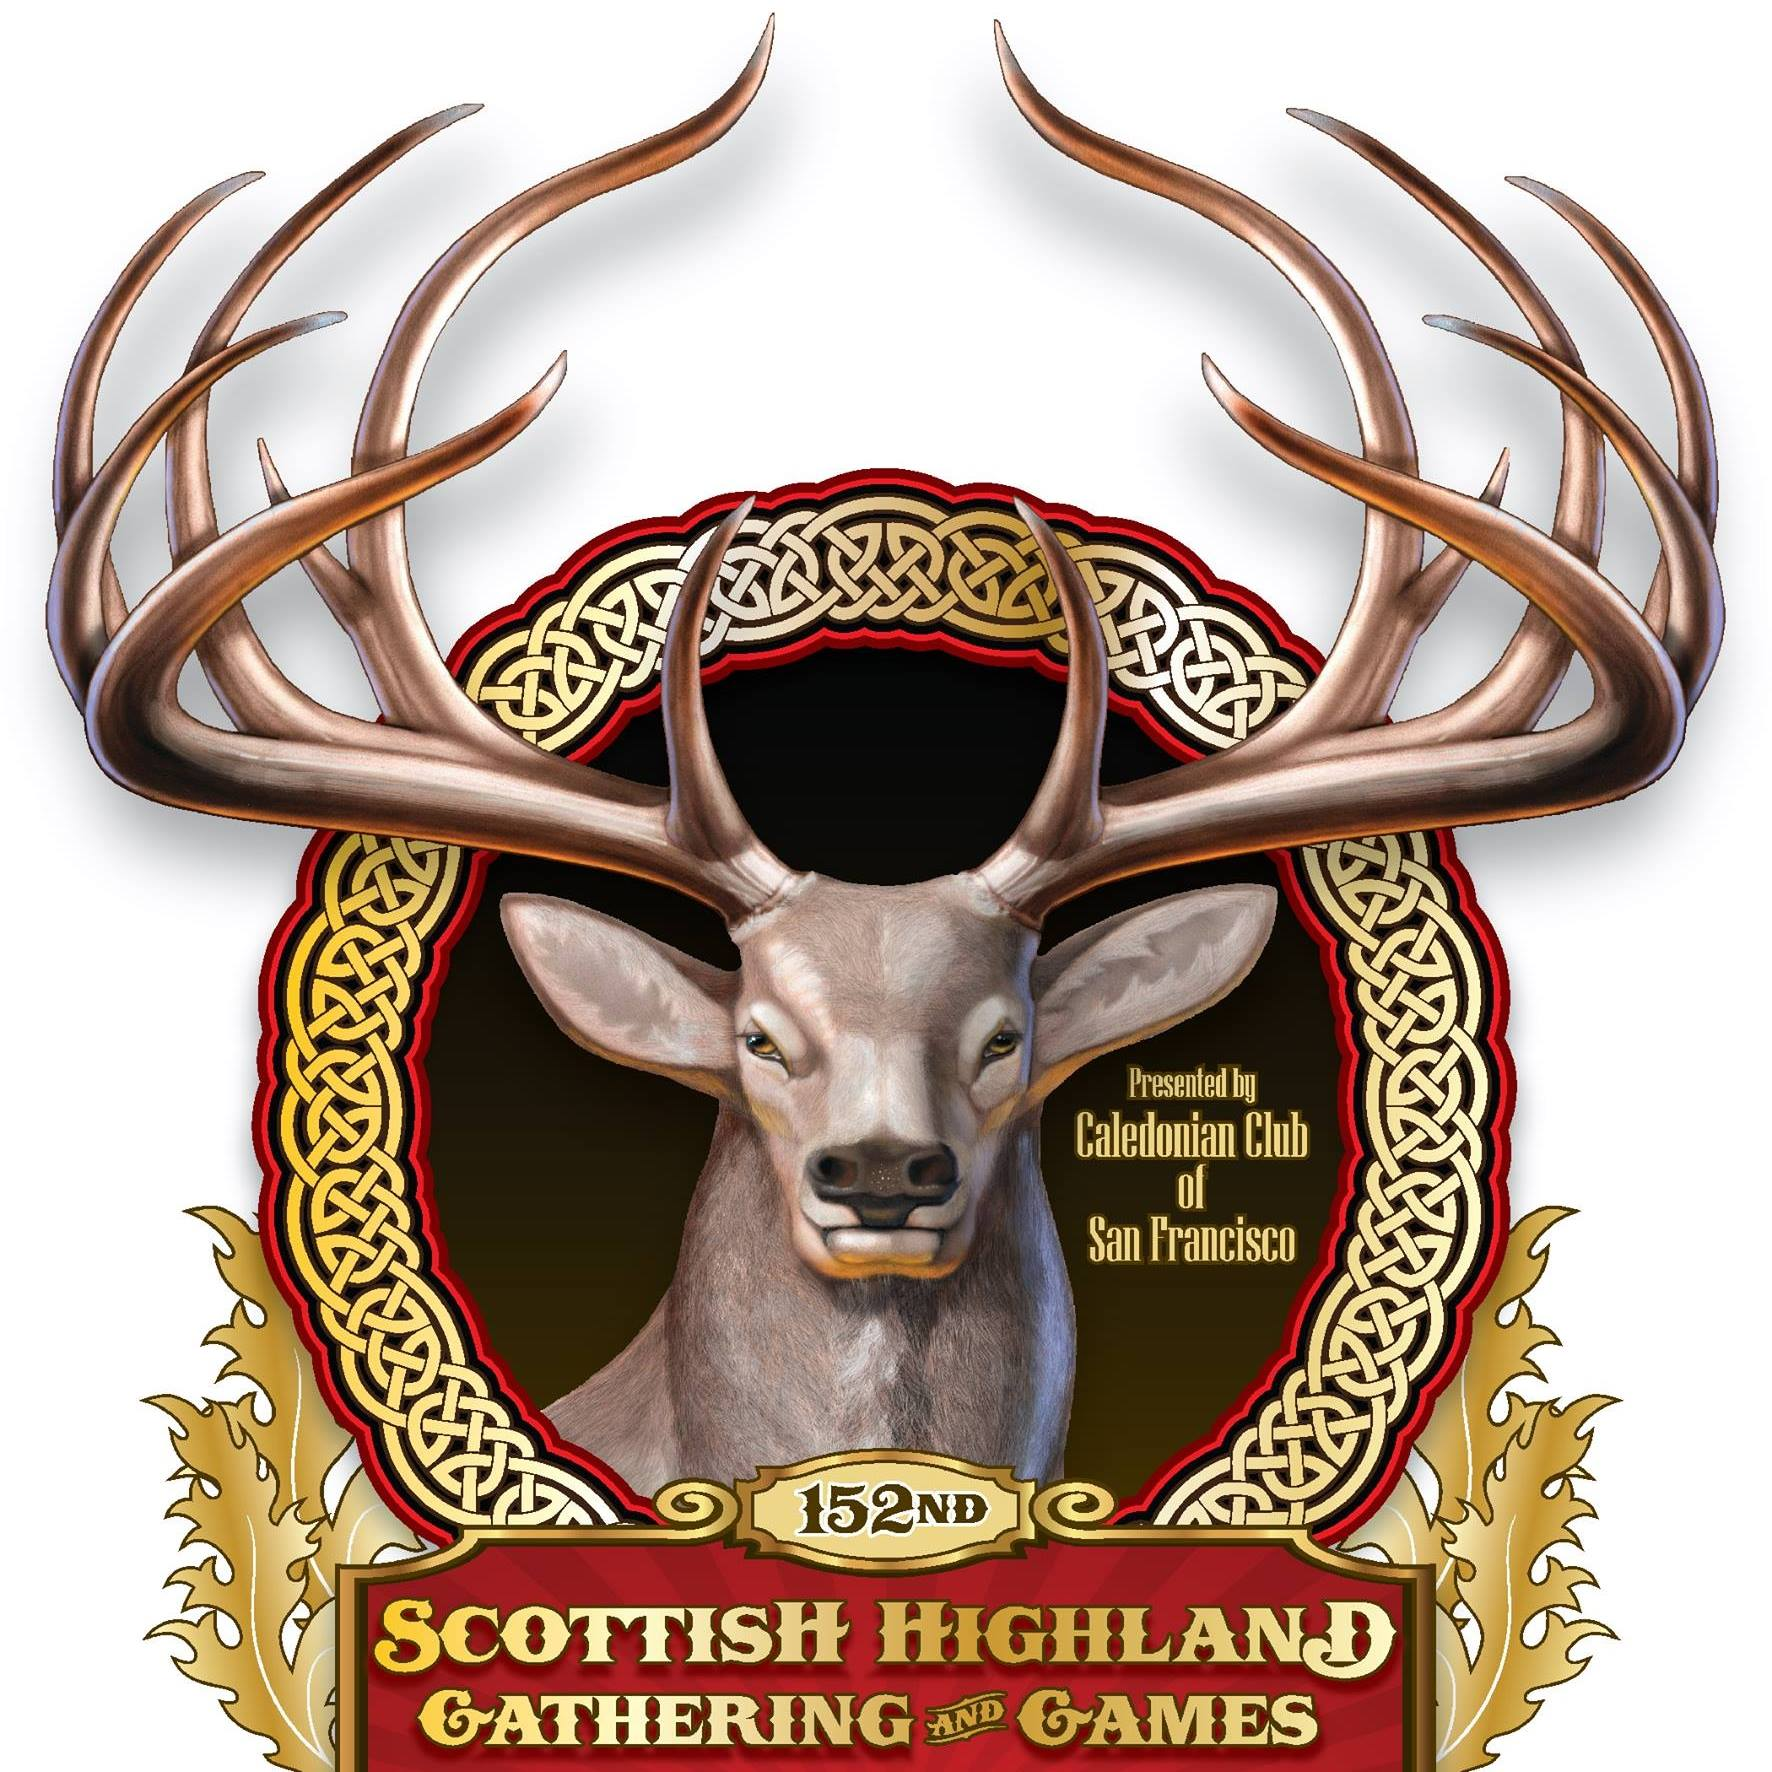 Scottish Highland Gathering and Games - August 31 - September 1Alameda County Fairgrounds, PleasantonCelebrate the very best of Scottish culture, competition, cuisine and entertainment, right here in California.